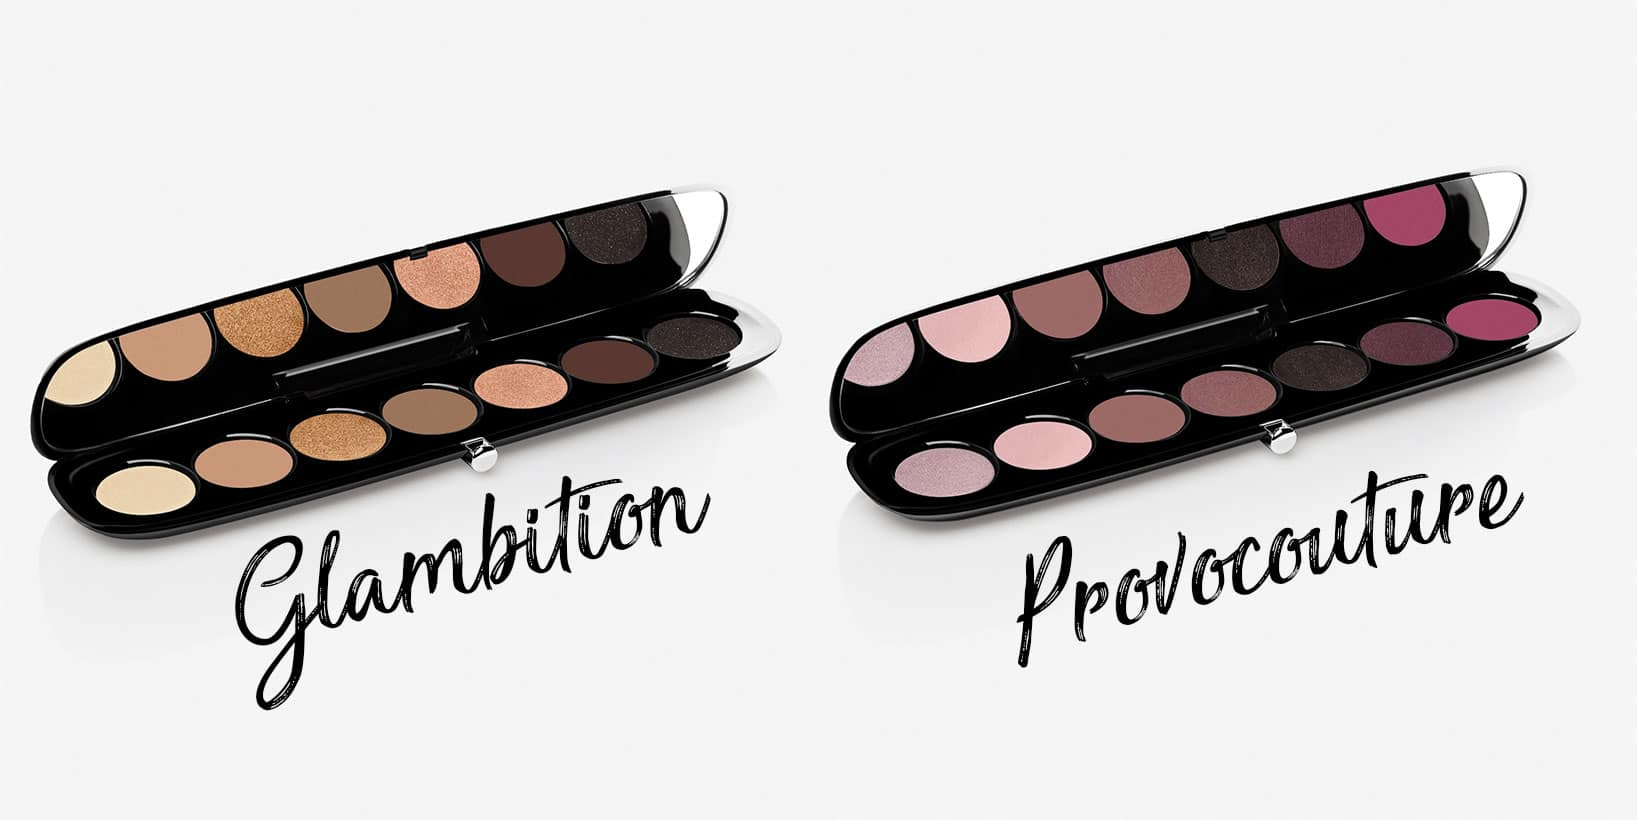 Marc Jacobs autunno 2017 eyeshadow palette